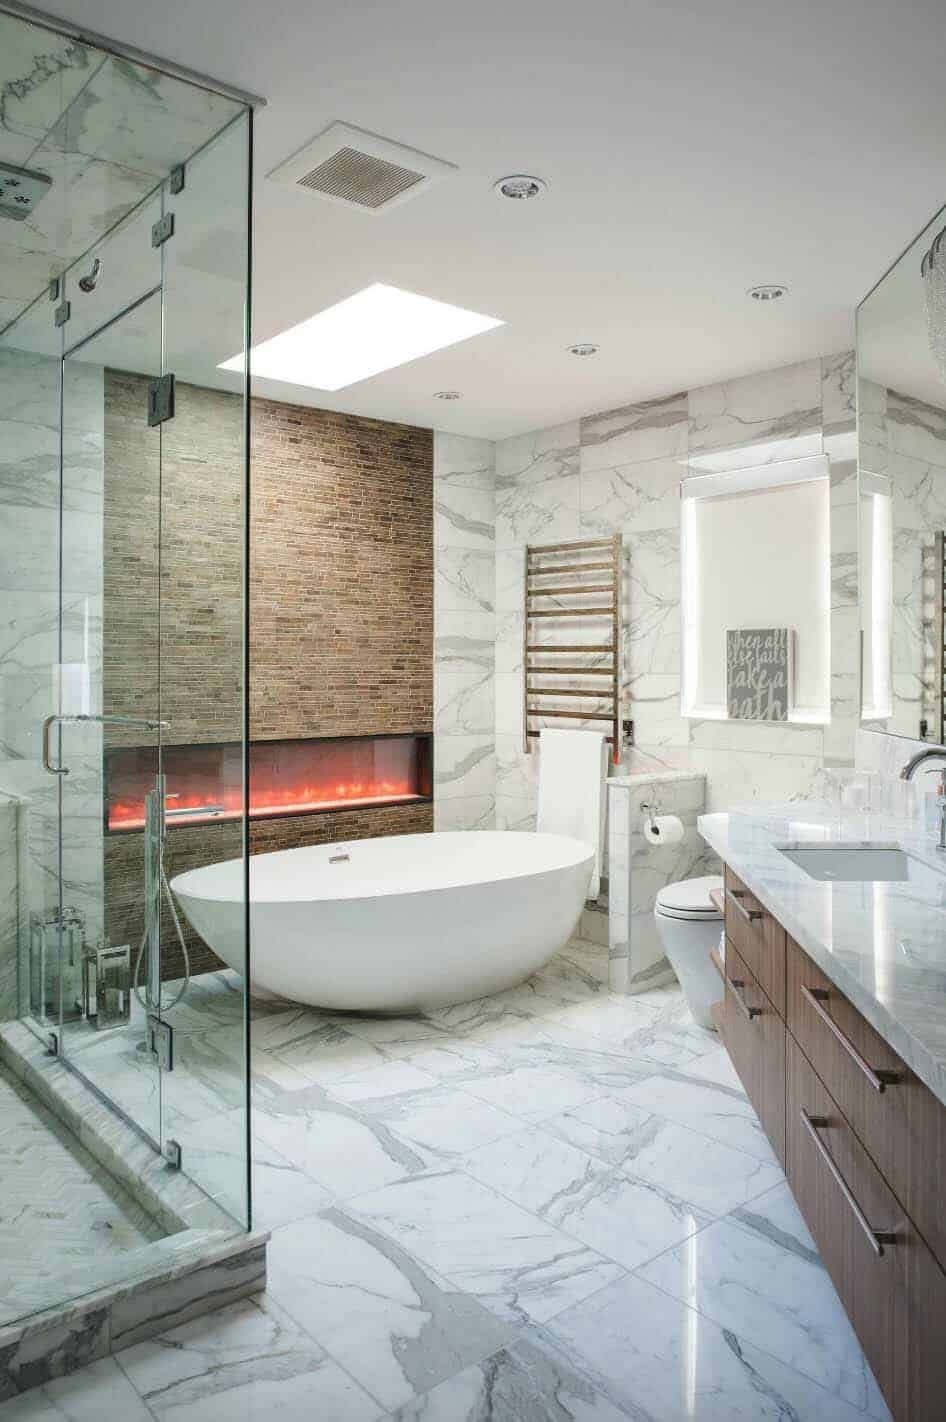 20+ Inspiring ideas to create a dreamy master bathroom retreat